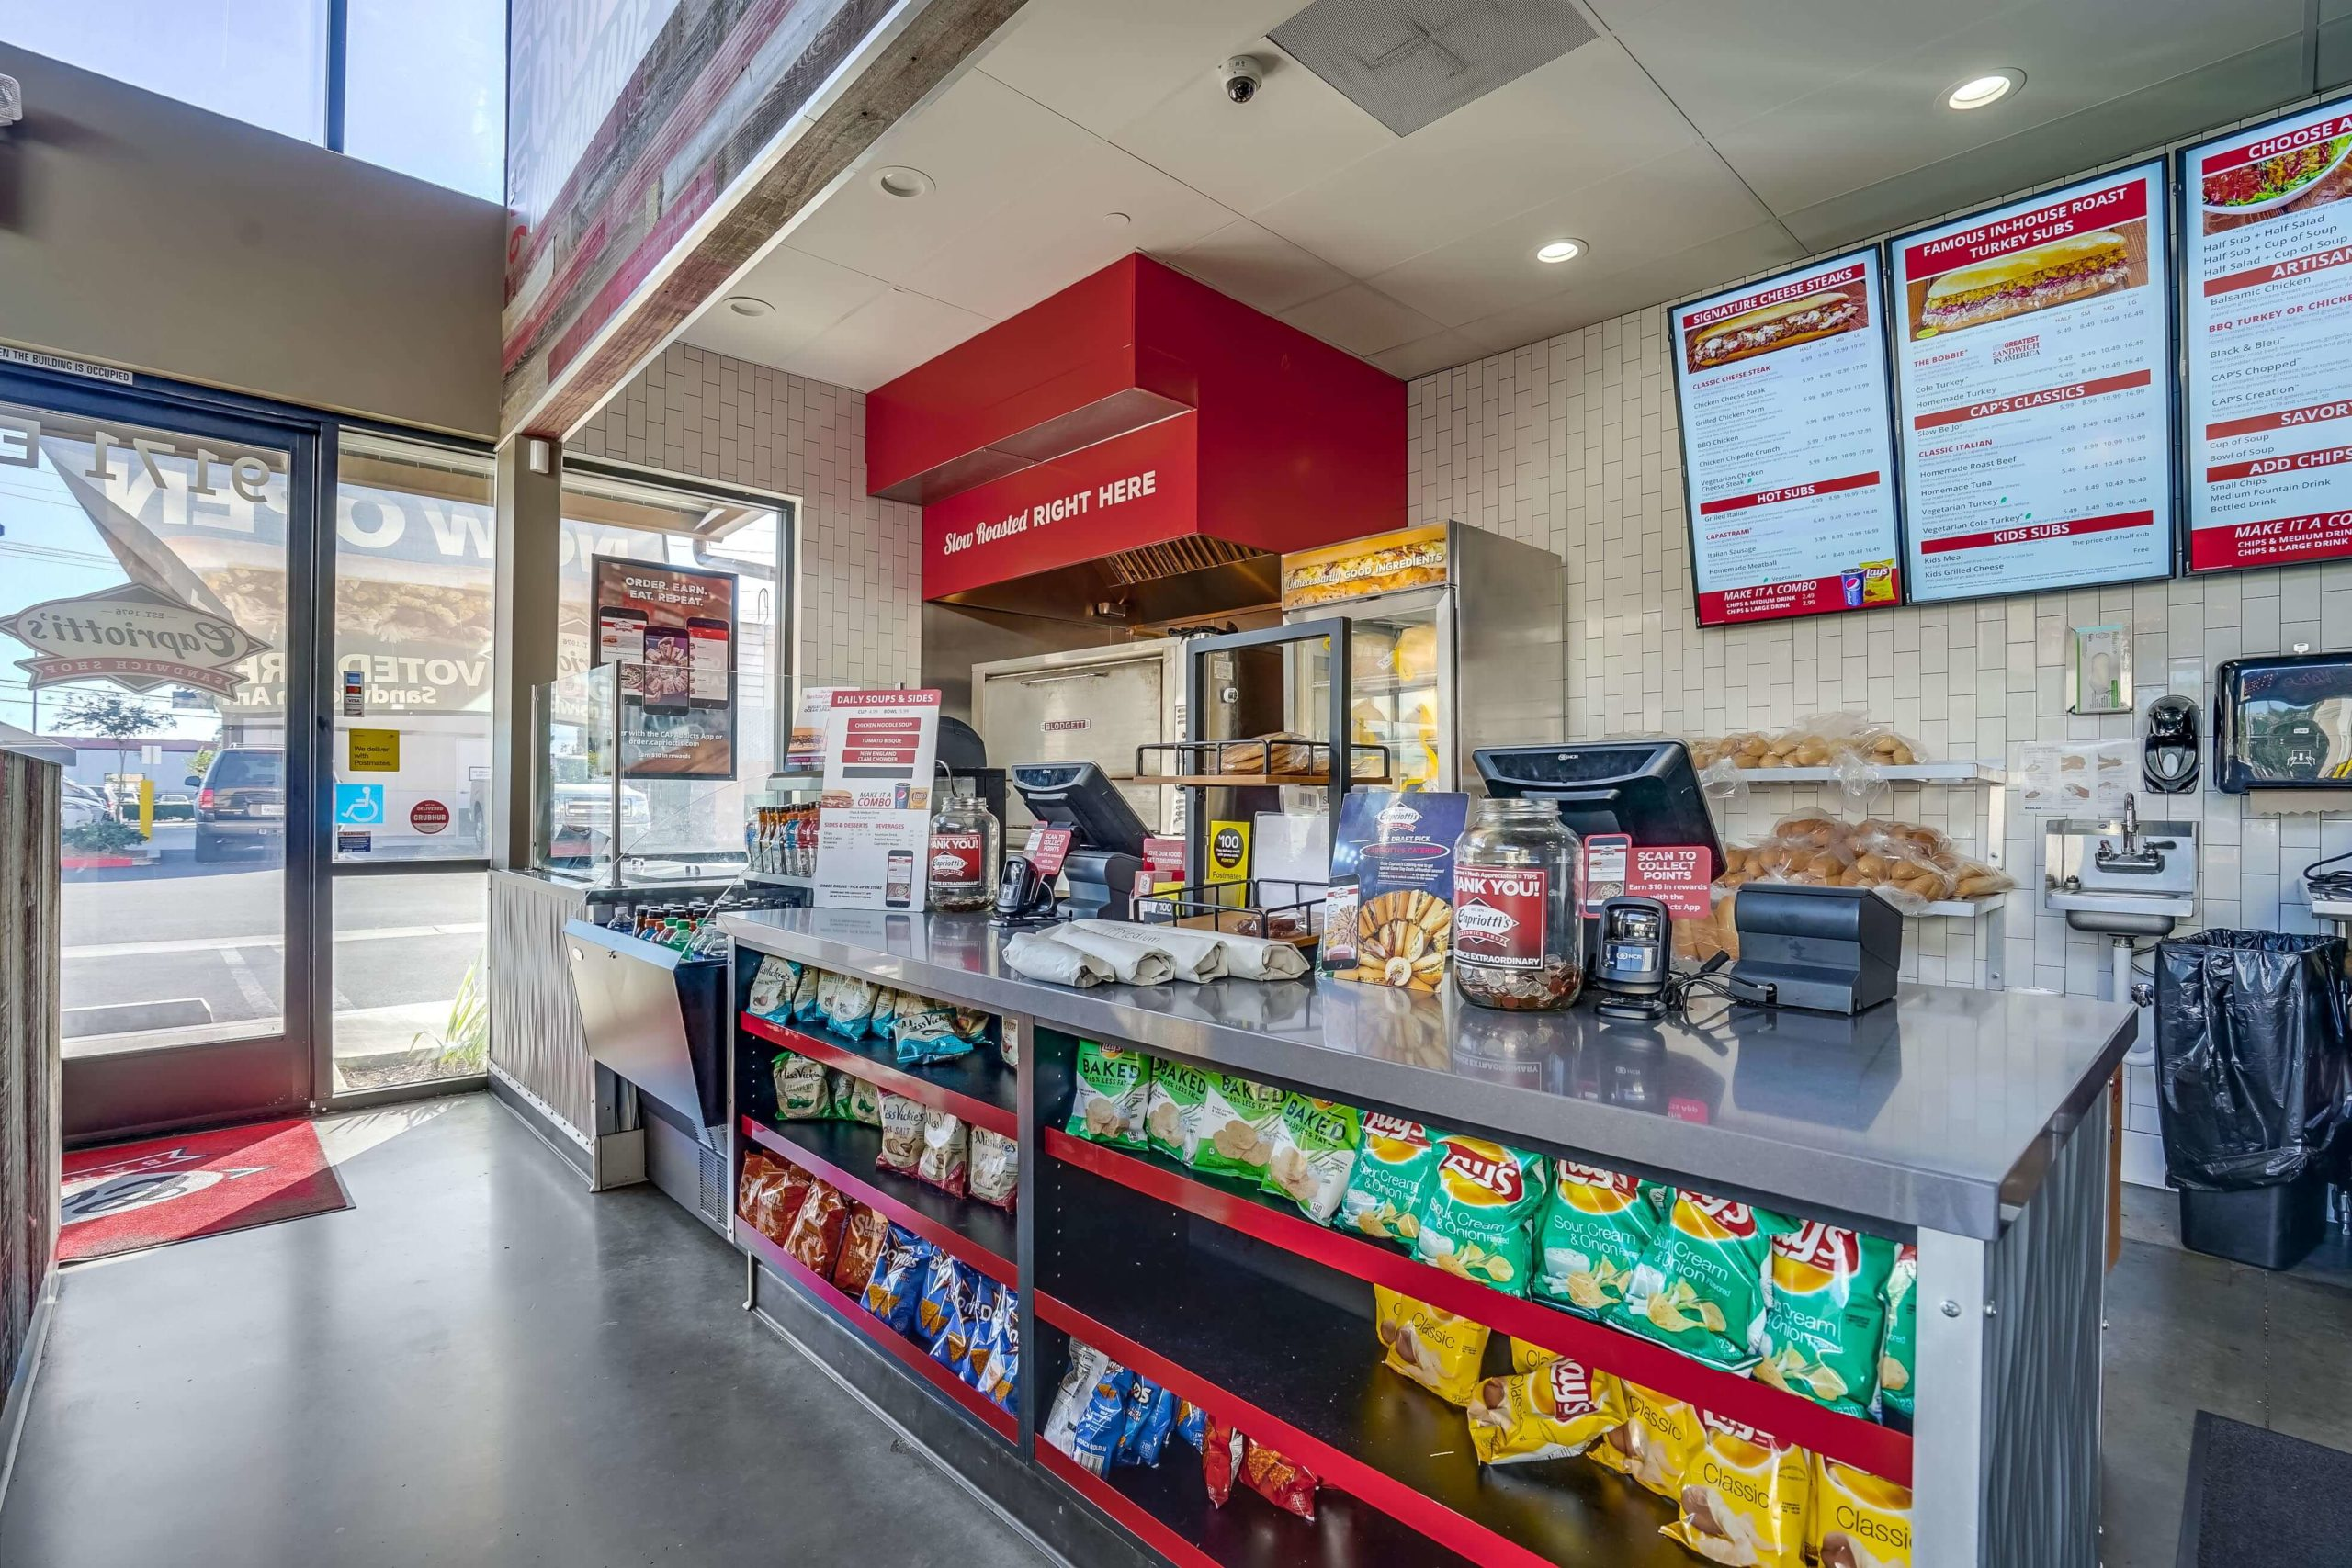 Ordering counter inside of Capriotti's in Chatsworth, CA